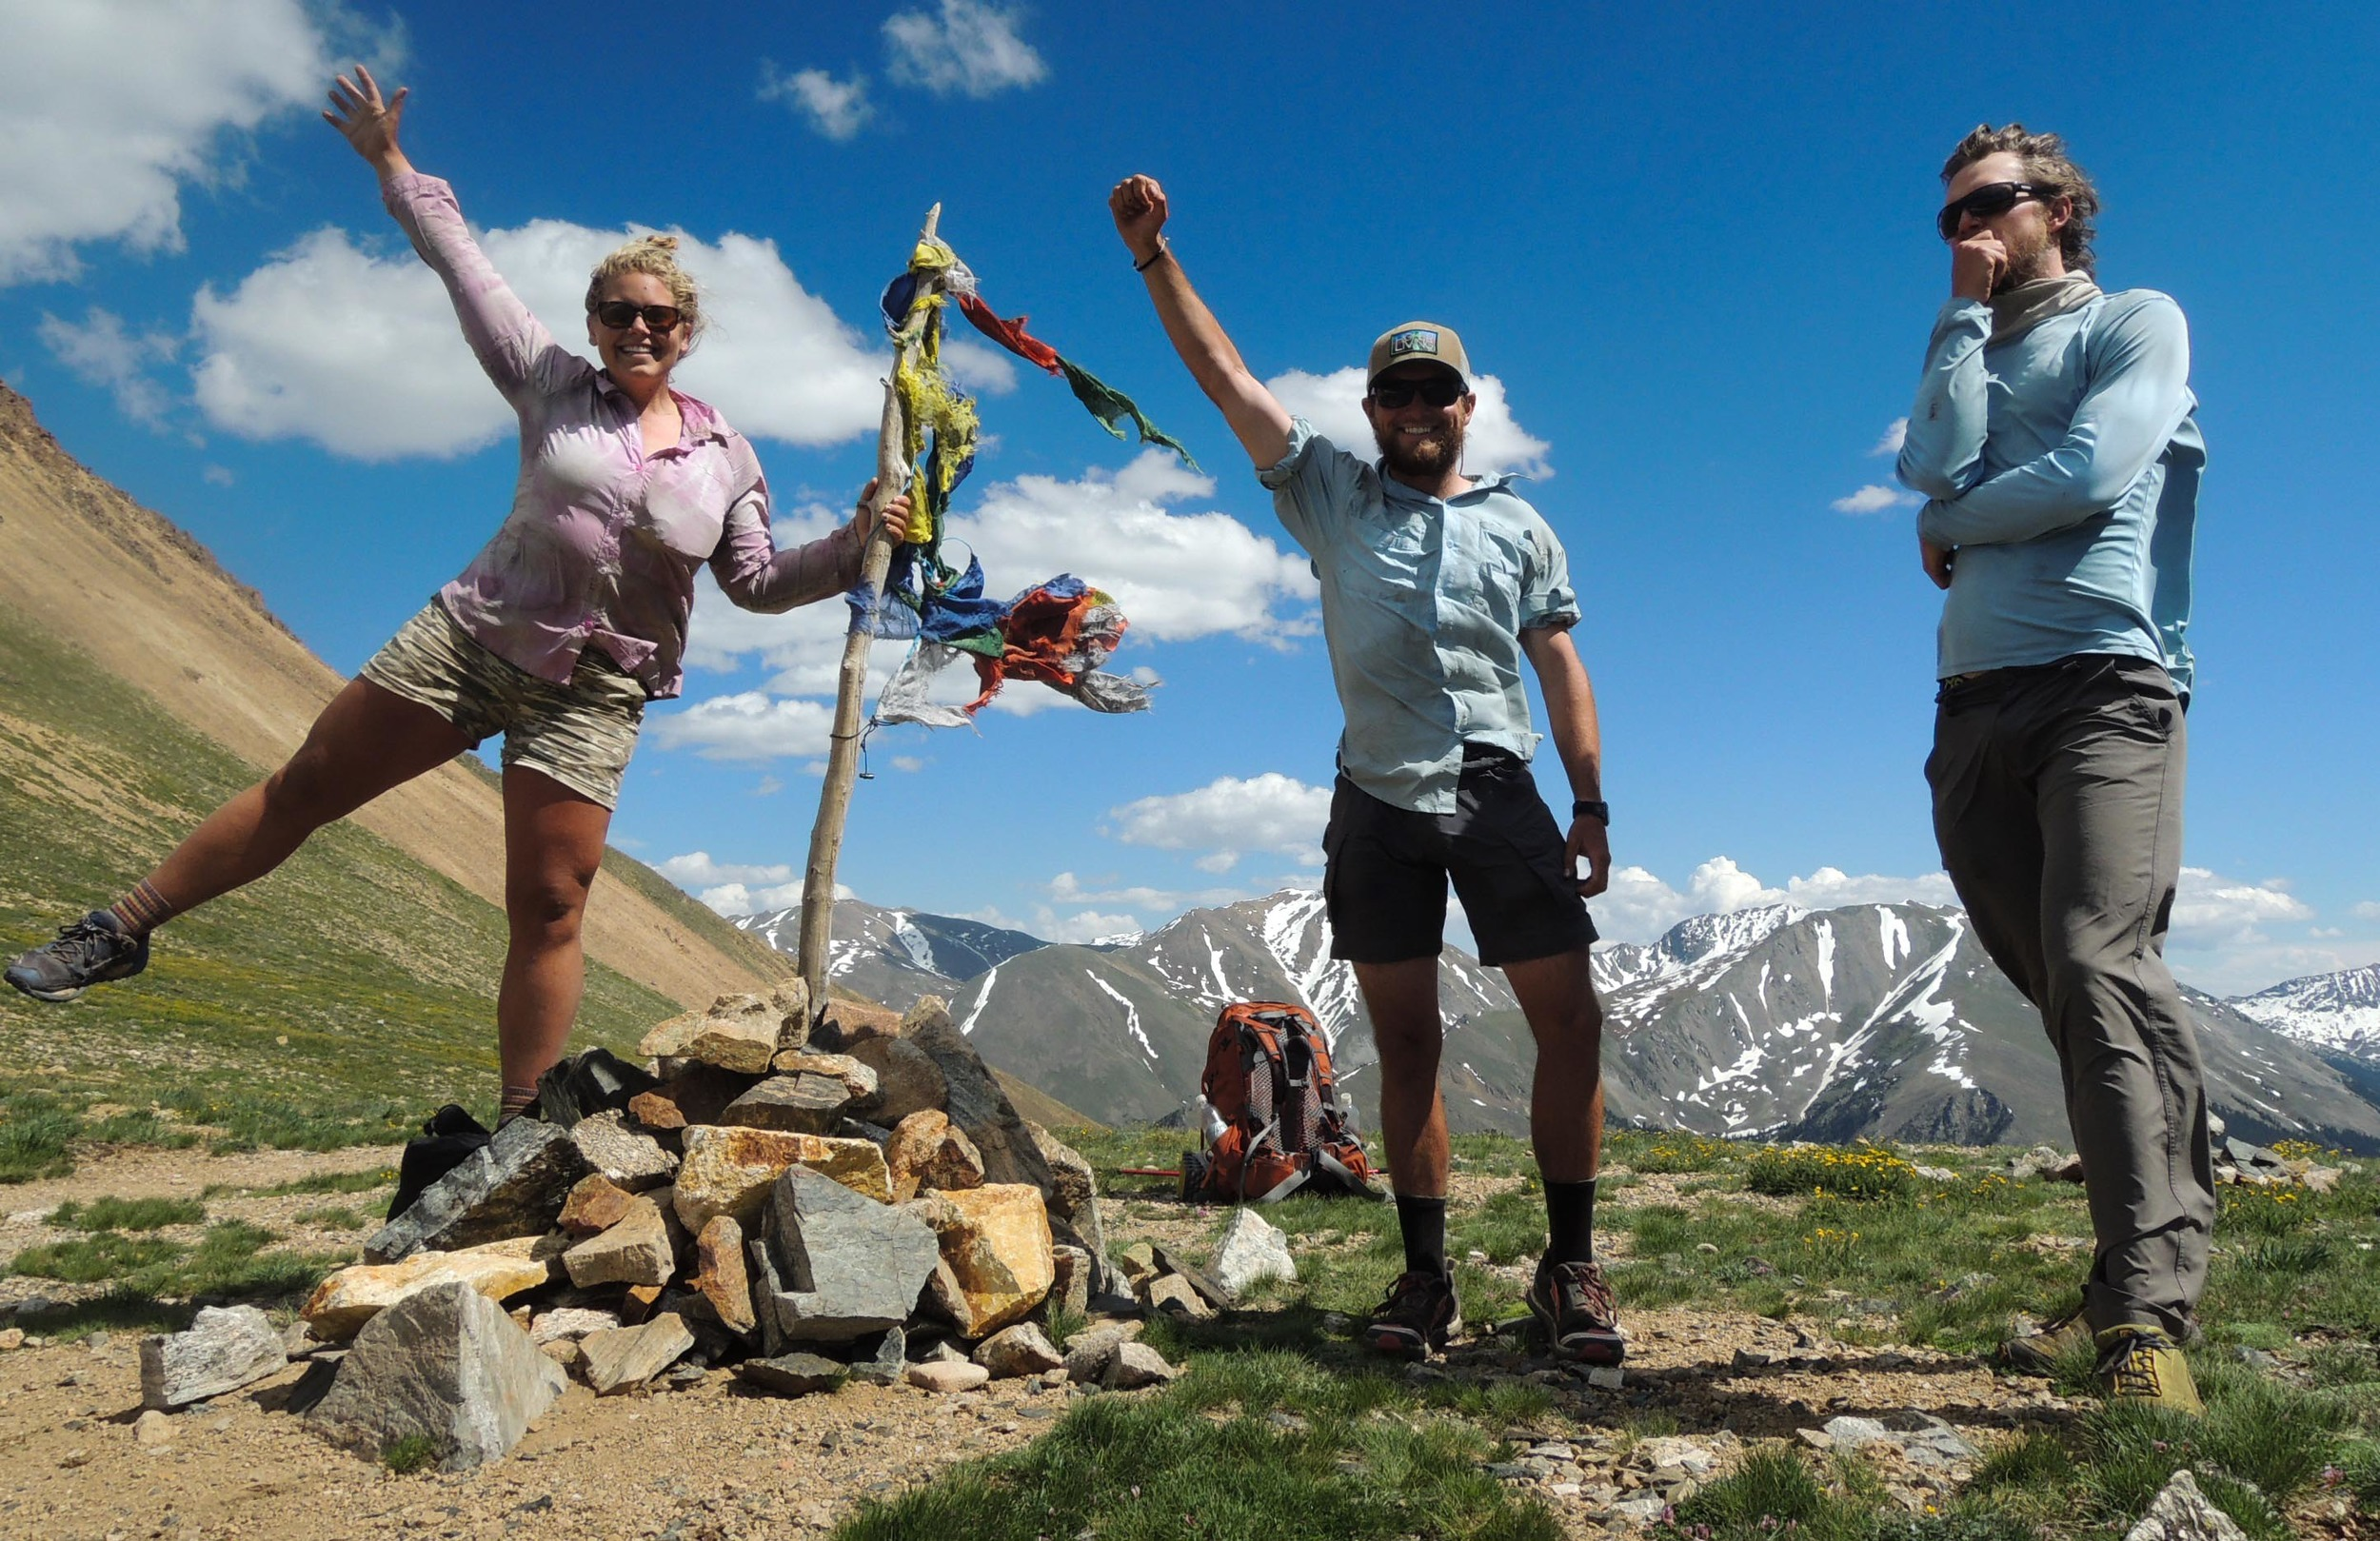 Meg Roussos, Chilton Tippin and Corey White celebrate reaching Hope Pass near Twin Lakes, Colorado.